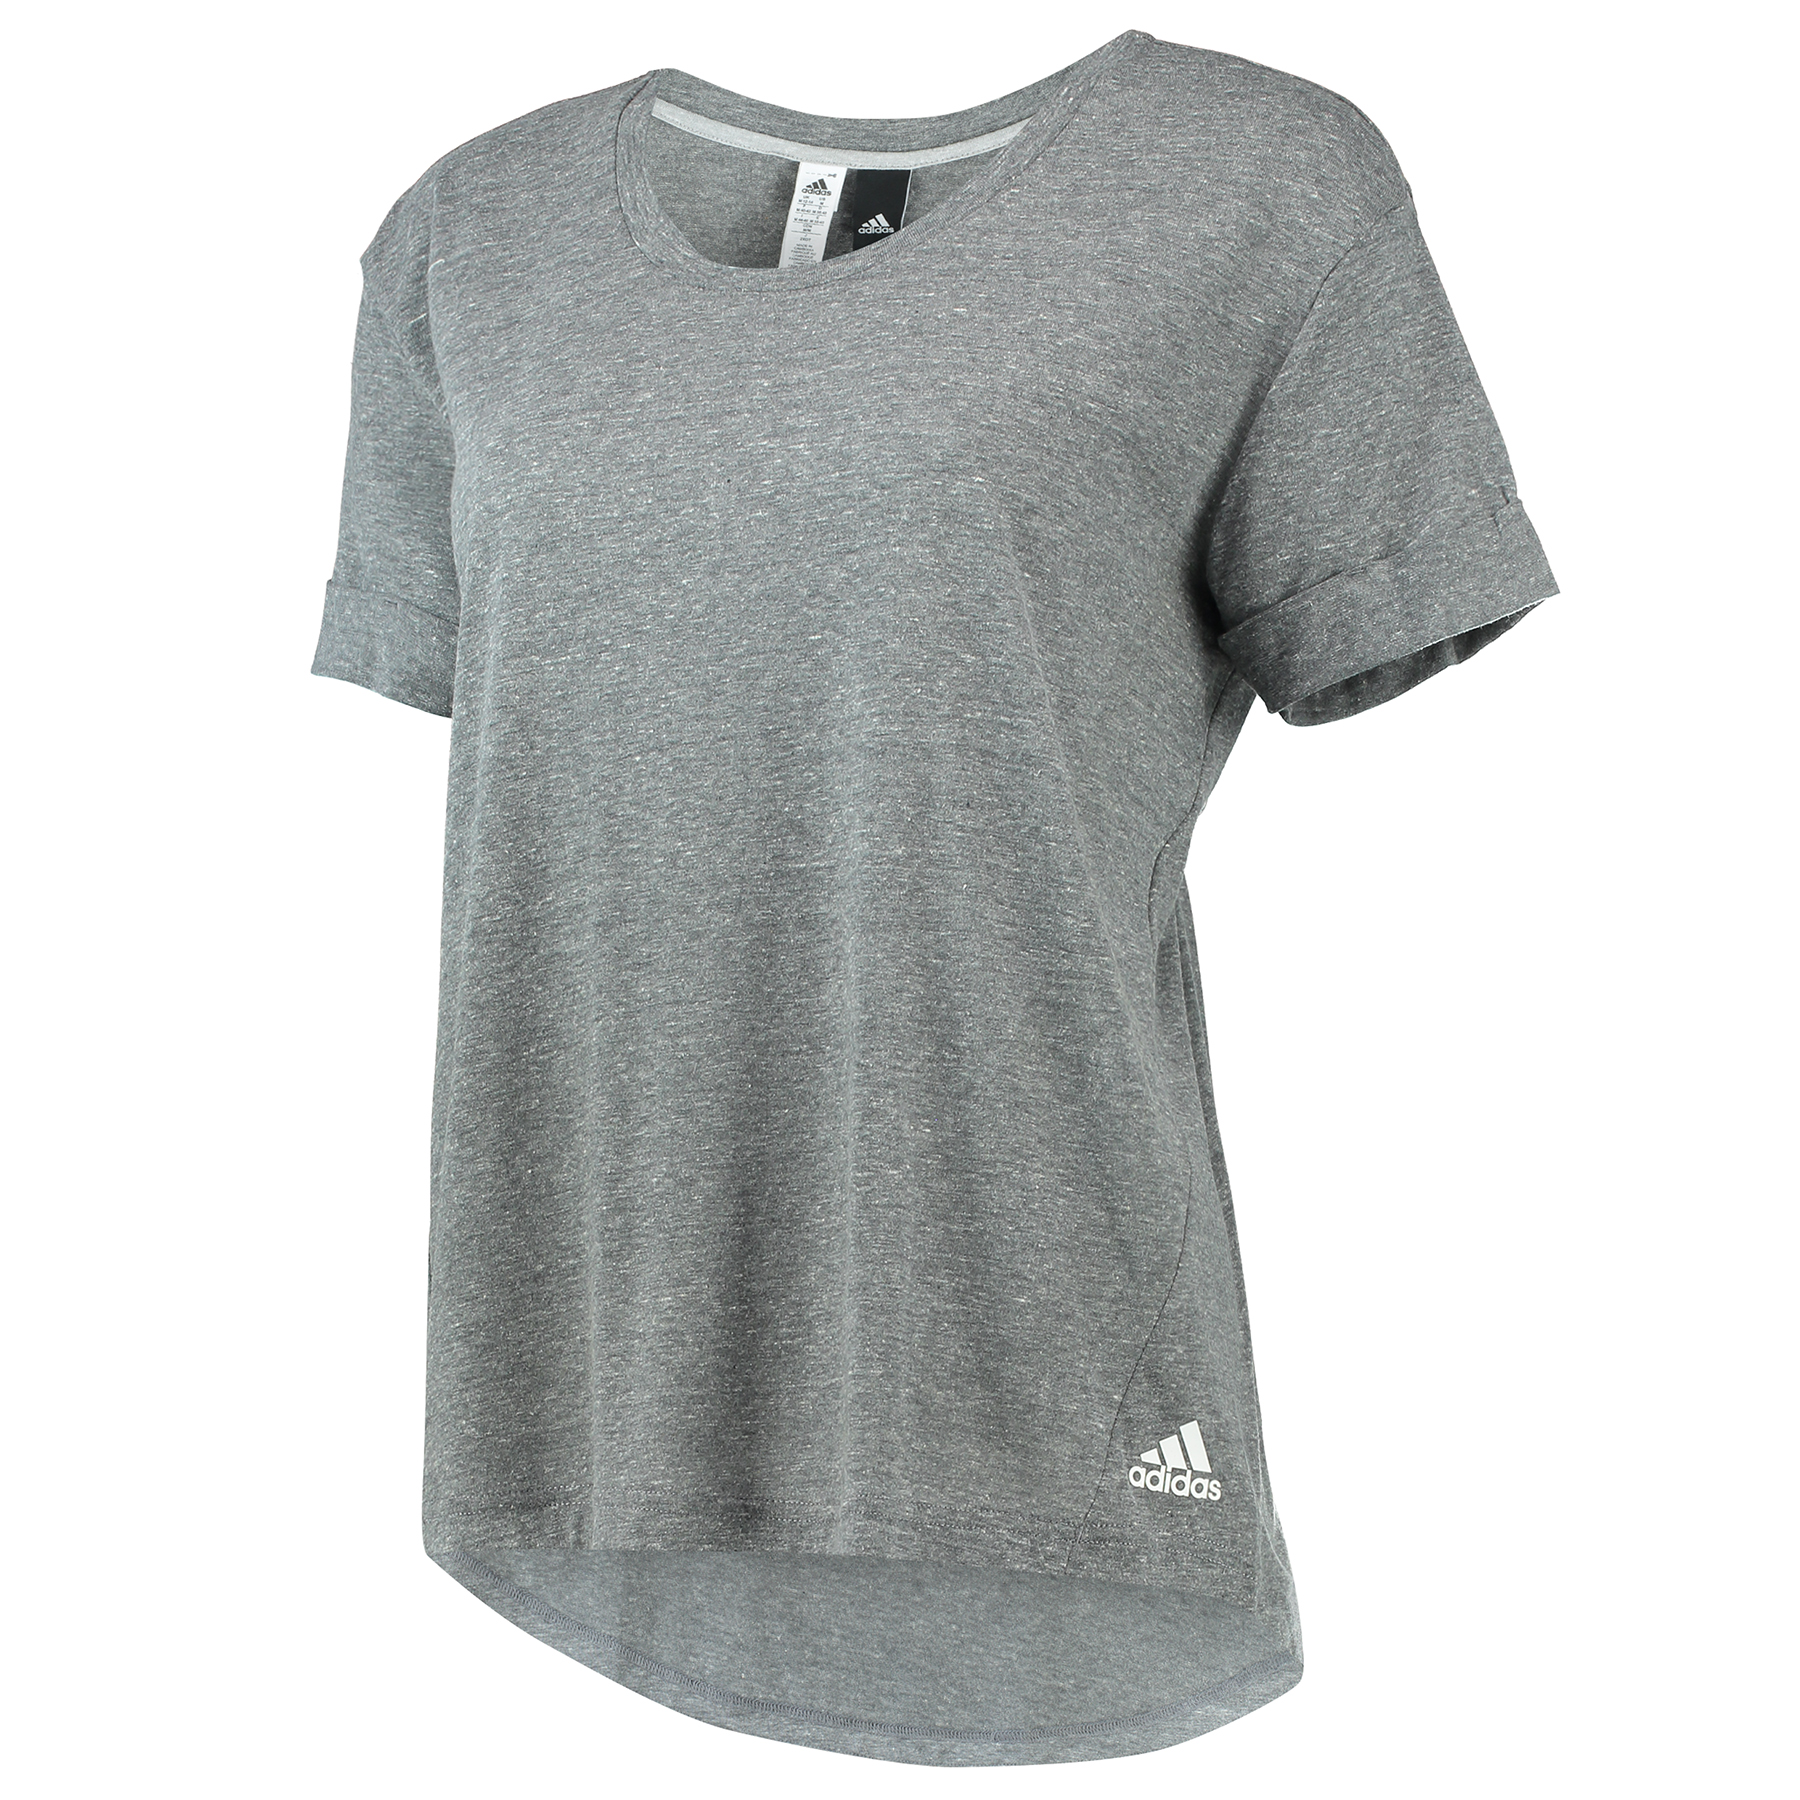 Chelsea Three Stripe T-Shirt - Womens - Dark Grey